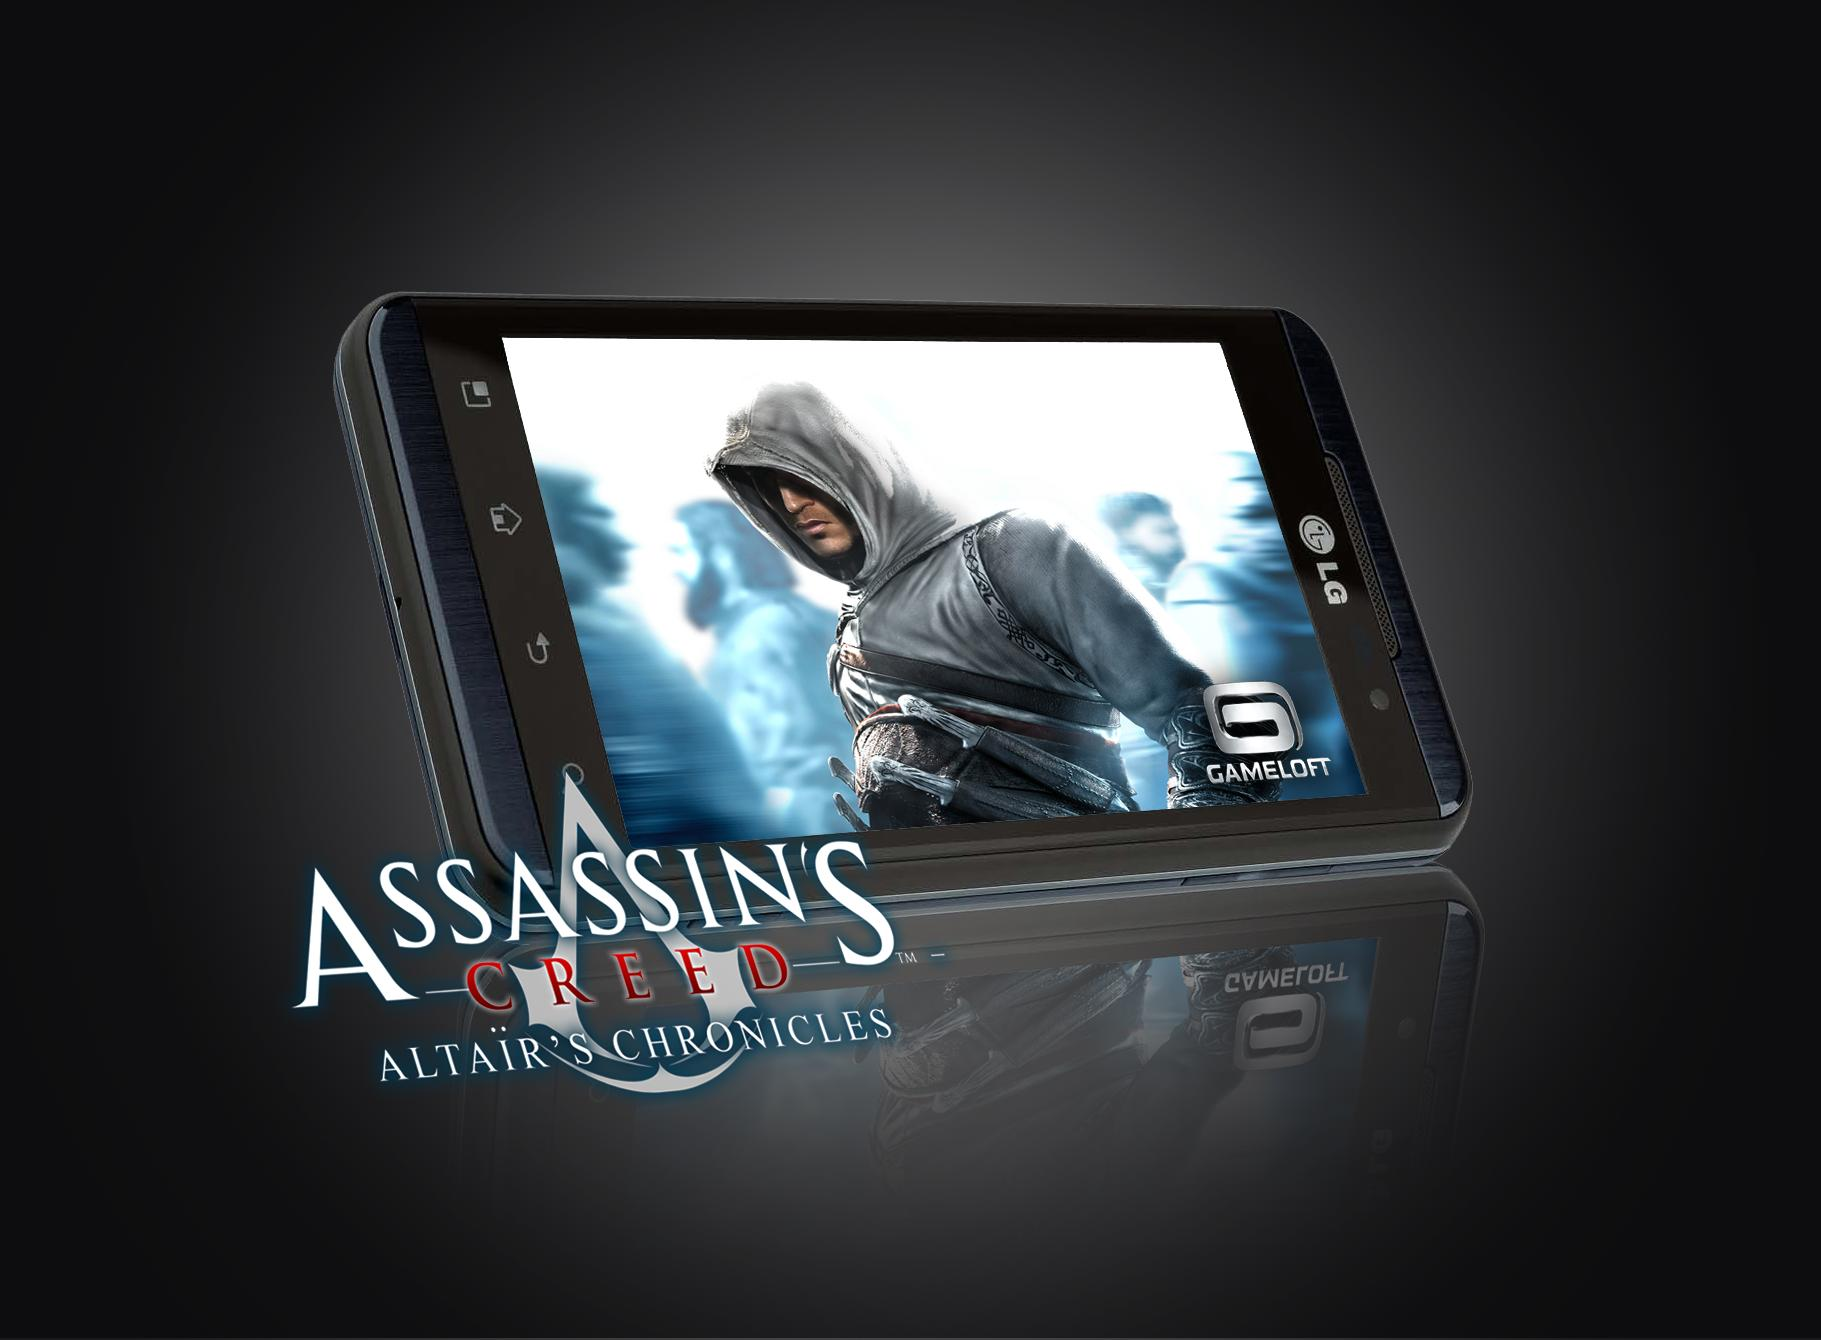 Gameloft's Assassin's Creed game image displayed on LG Optimus 3D